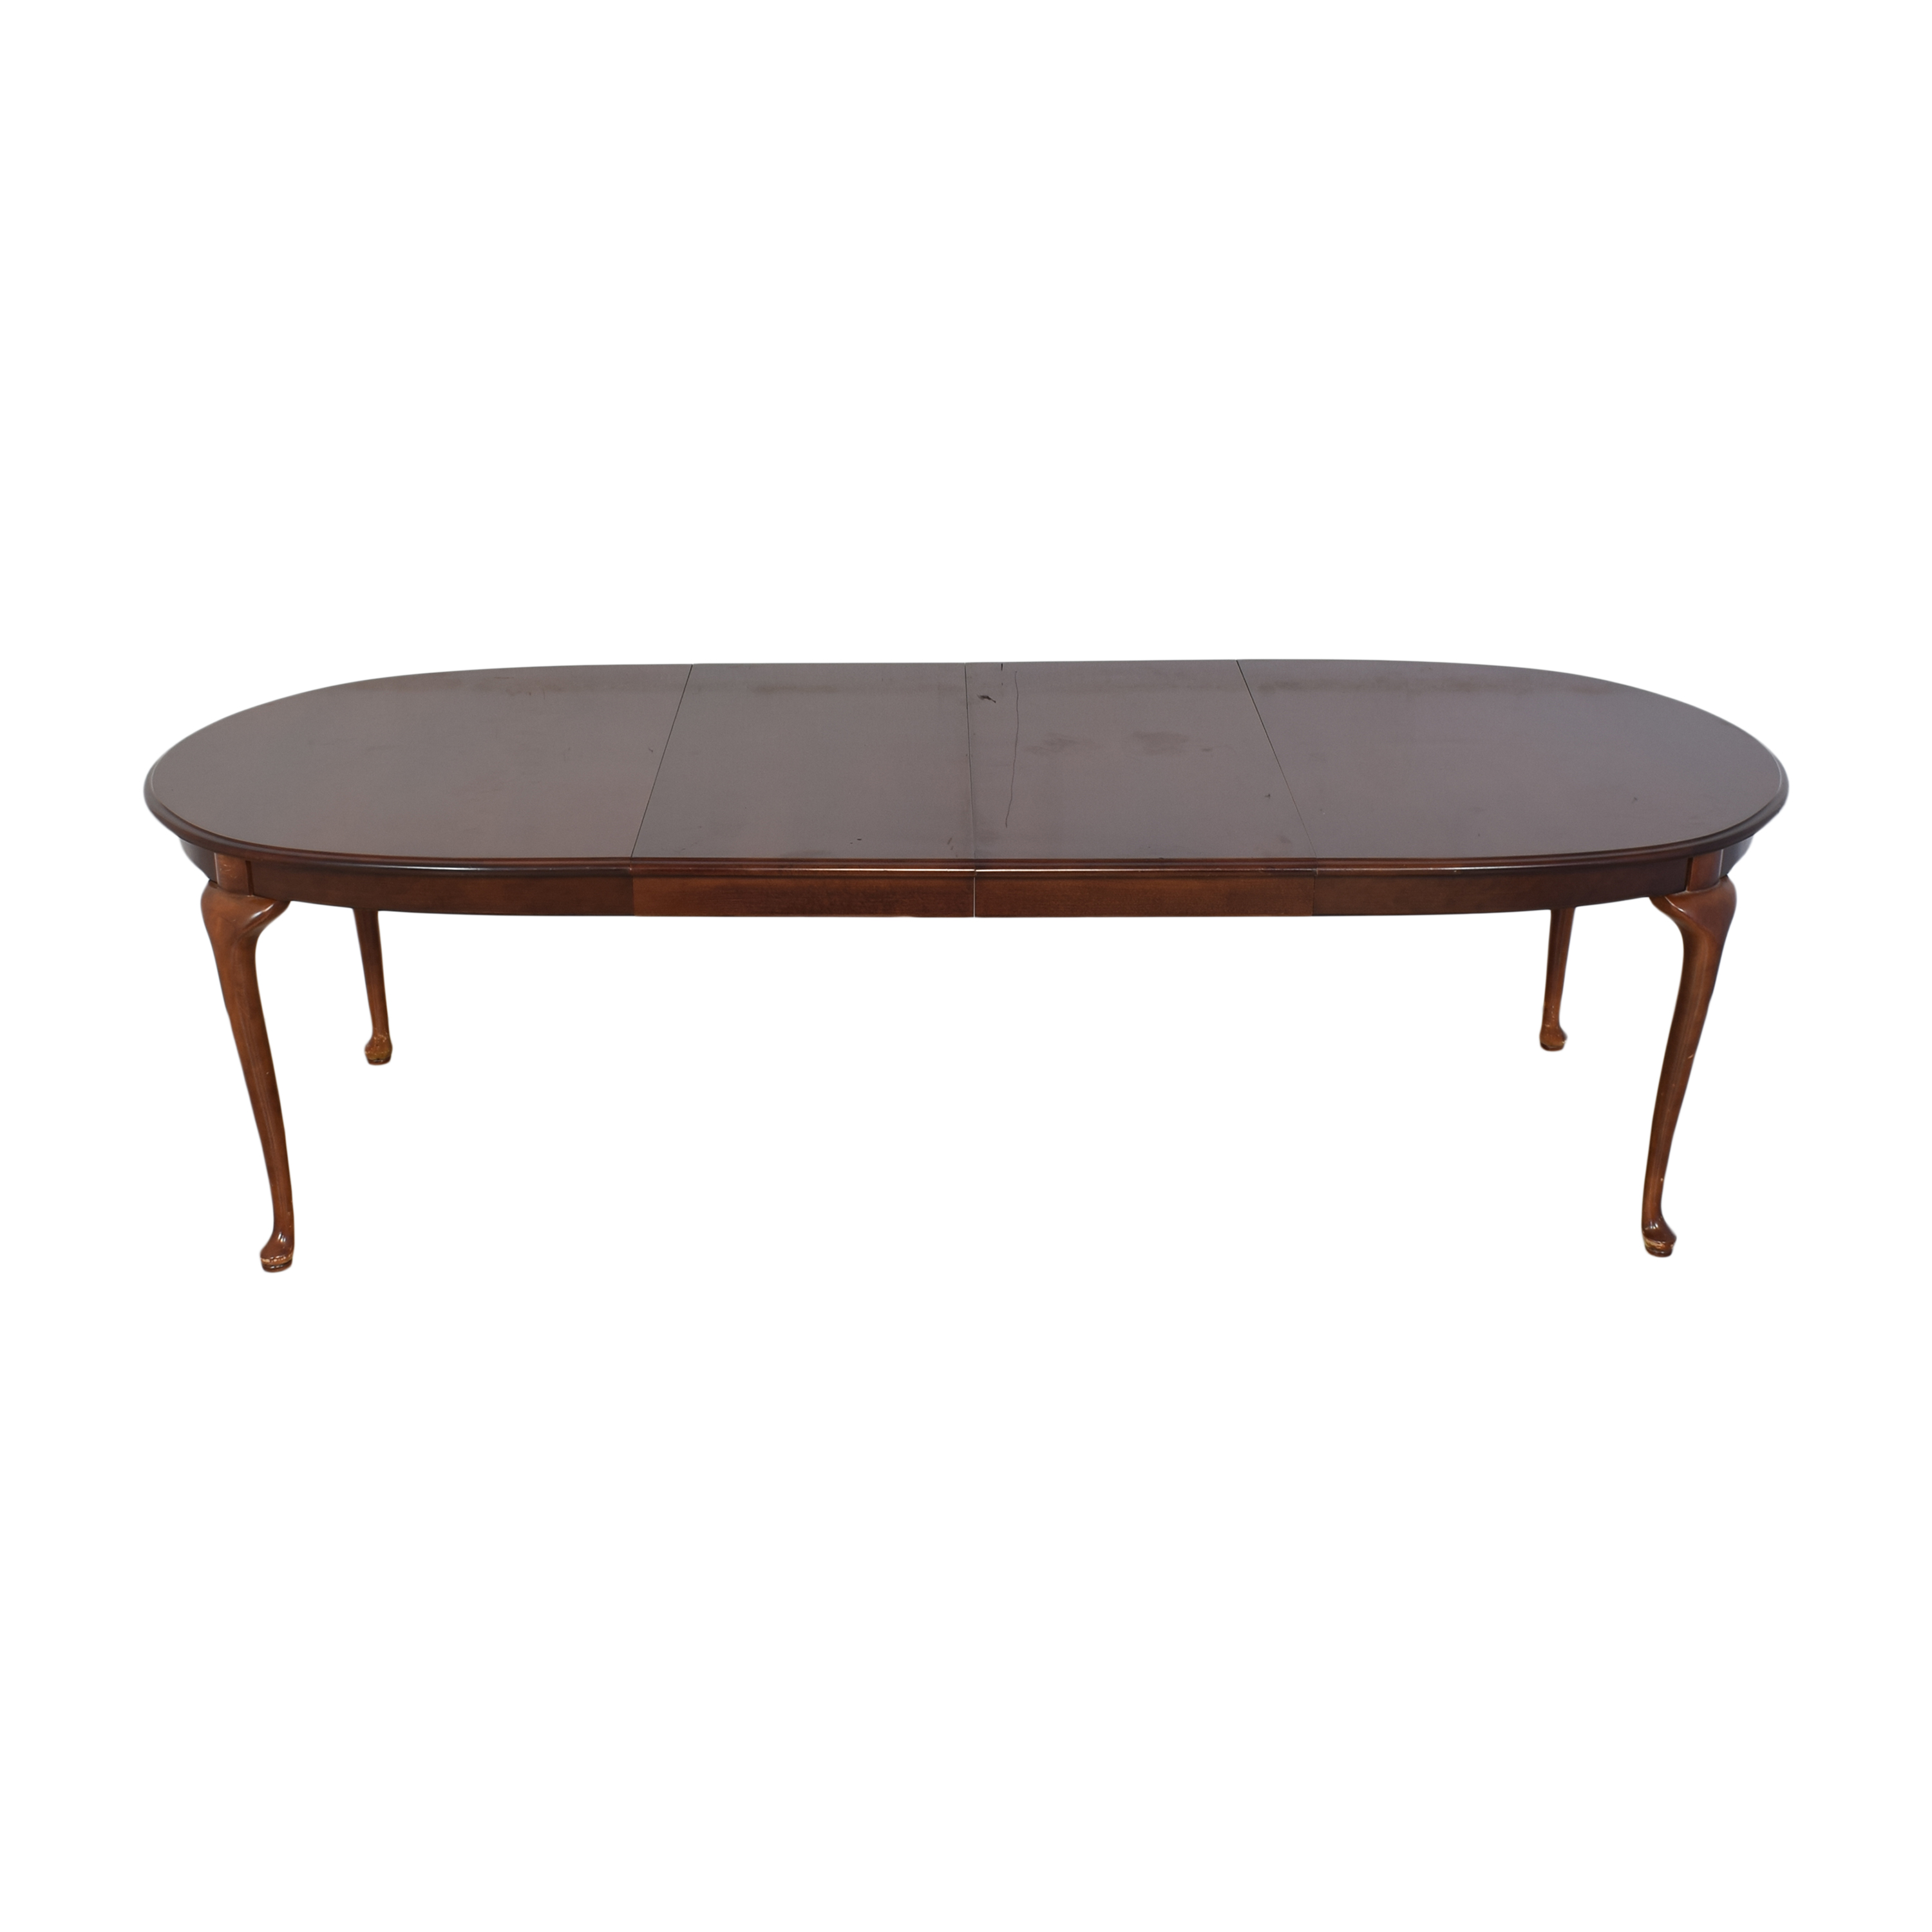 Thomasville Extending Dining Table / Tables